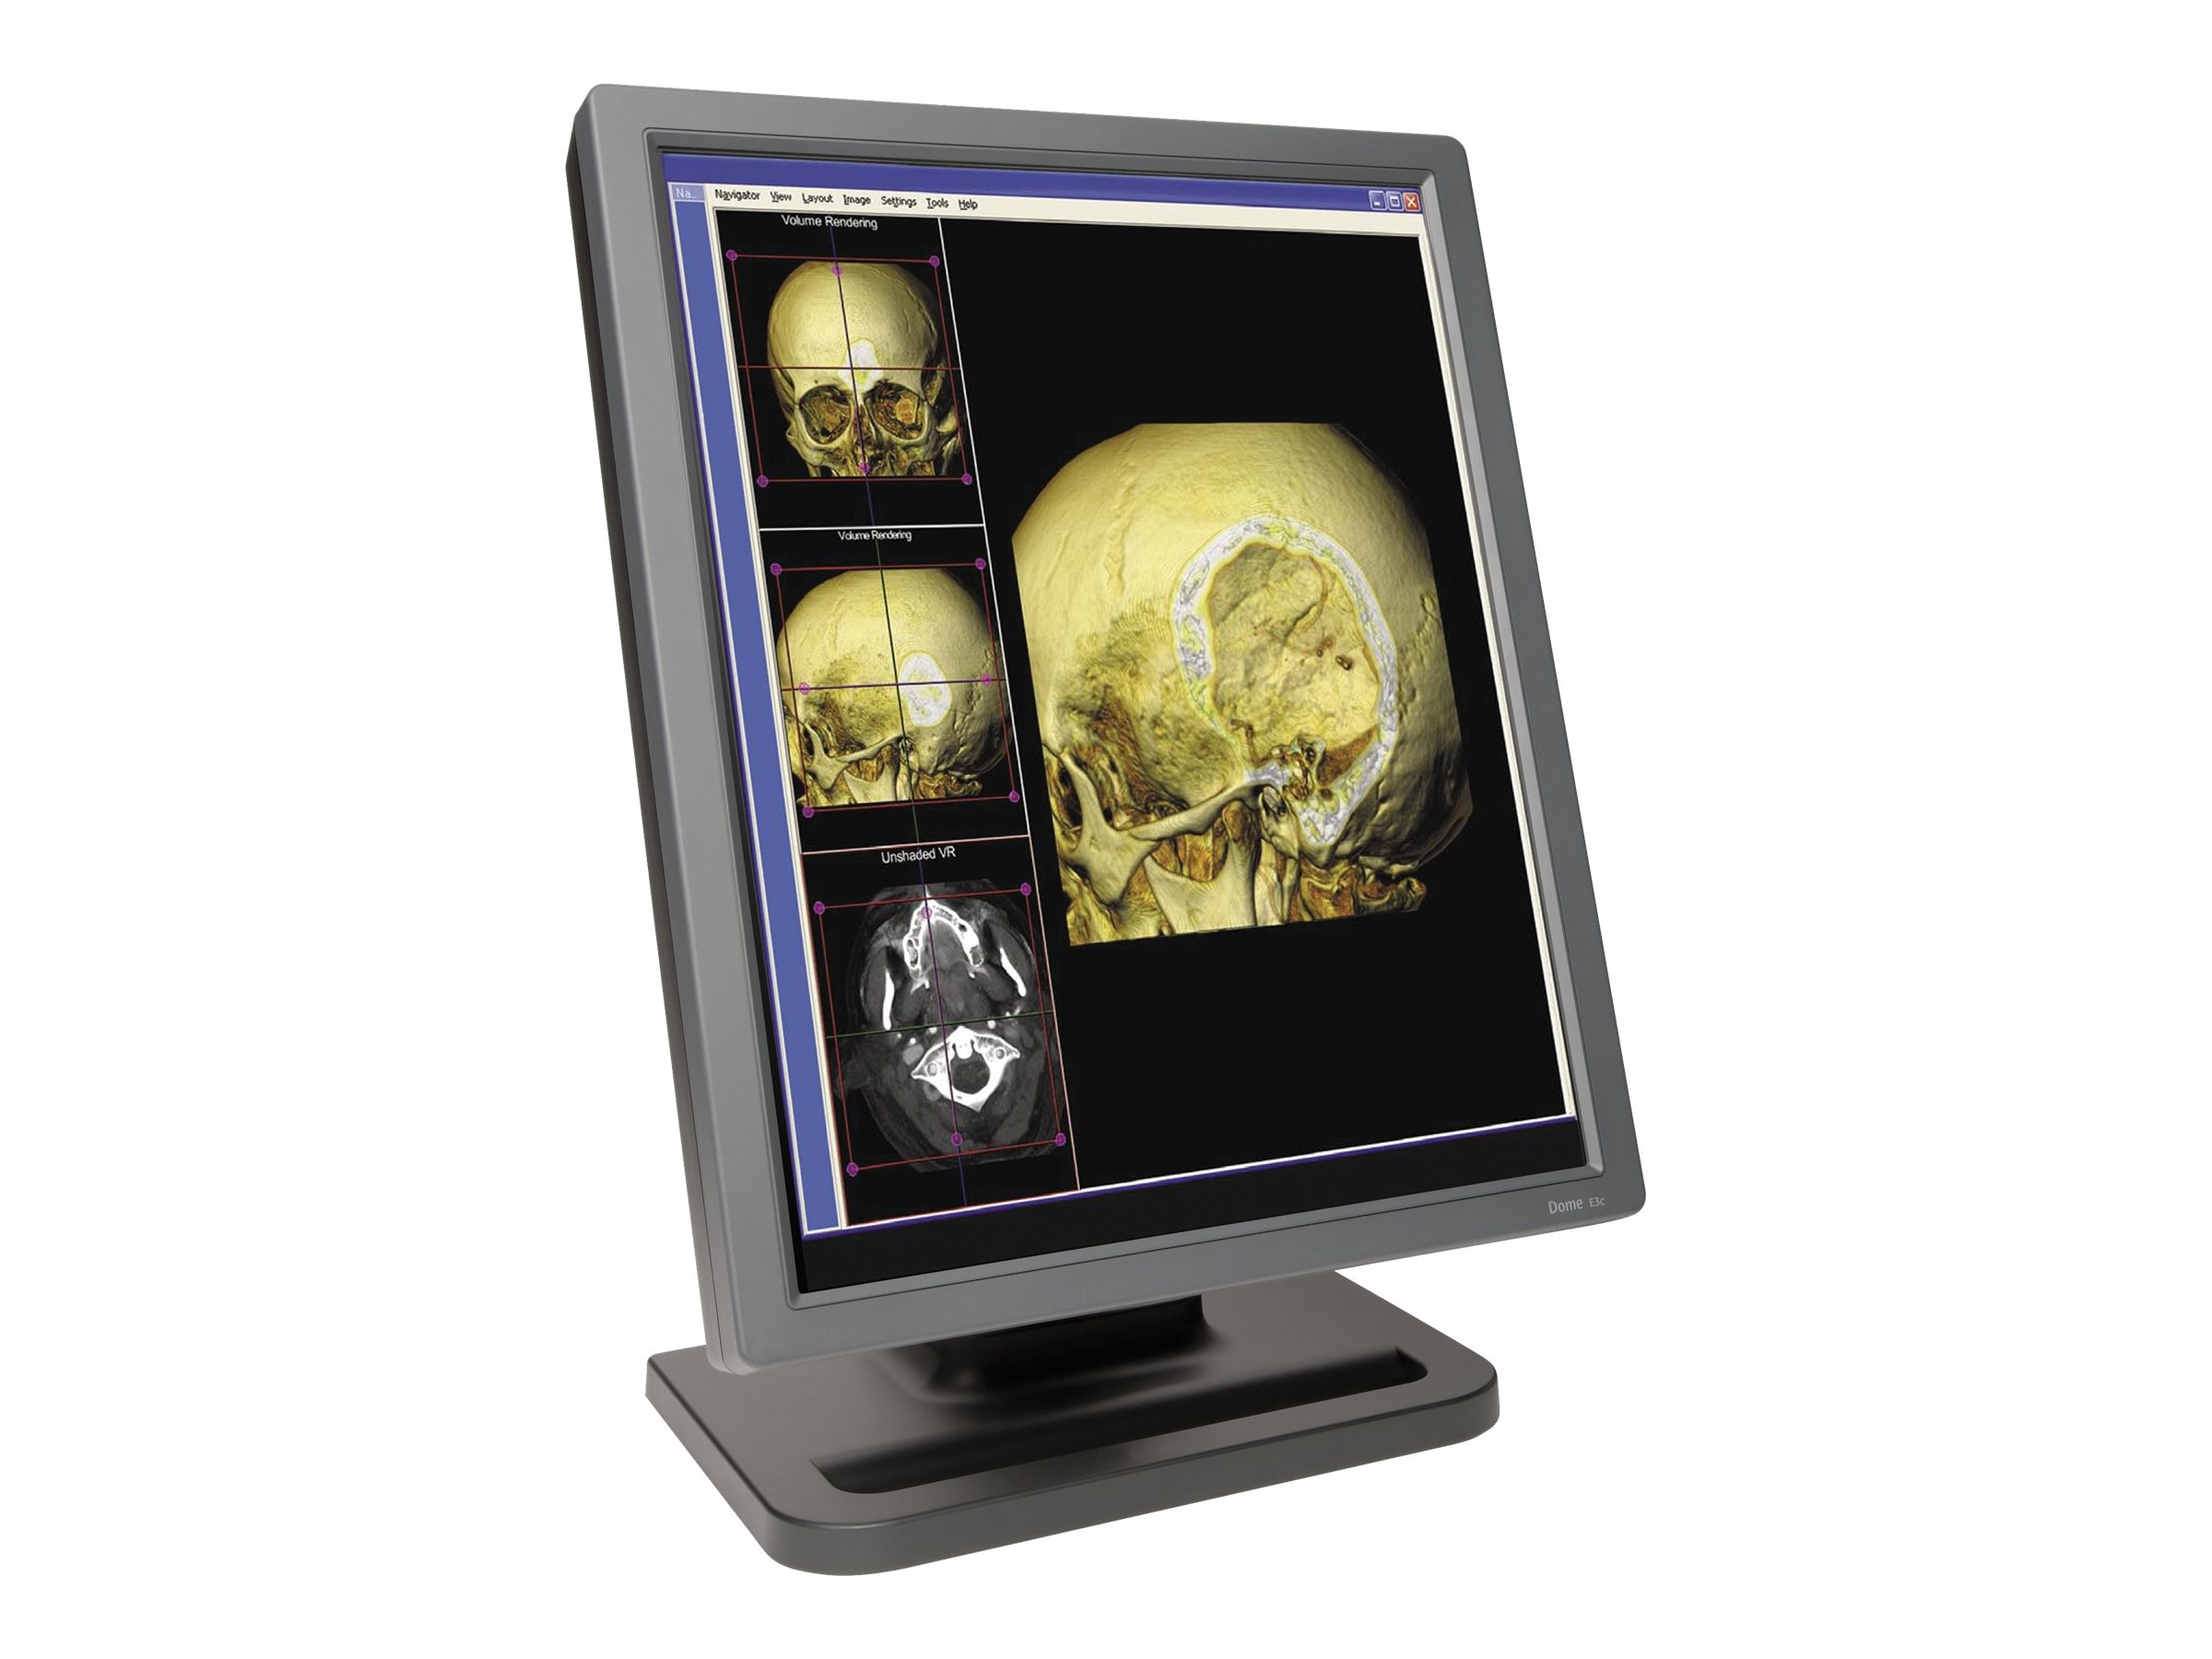 NDS Surgical Imaging 997-5703-00-1NN Image 1